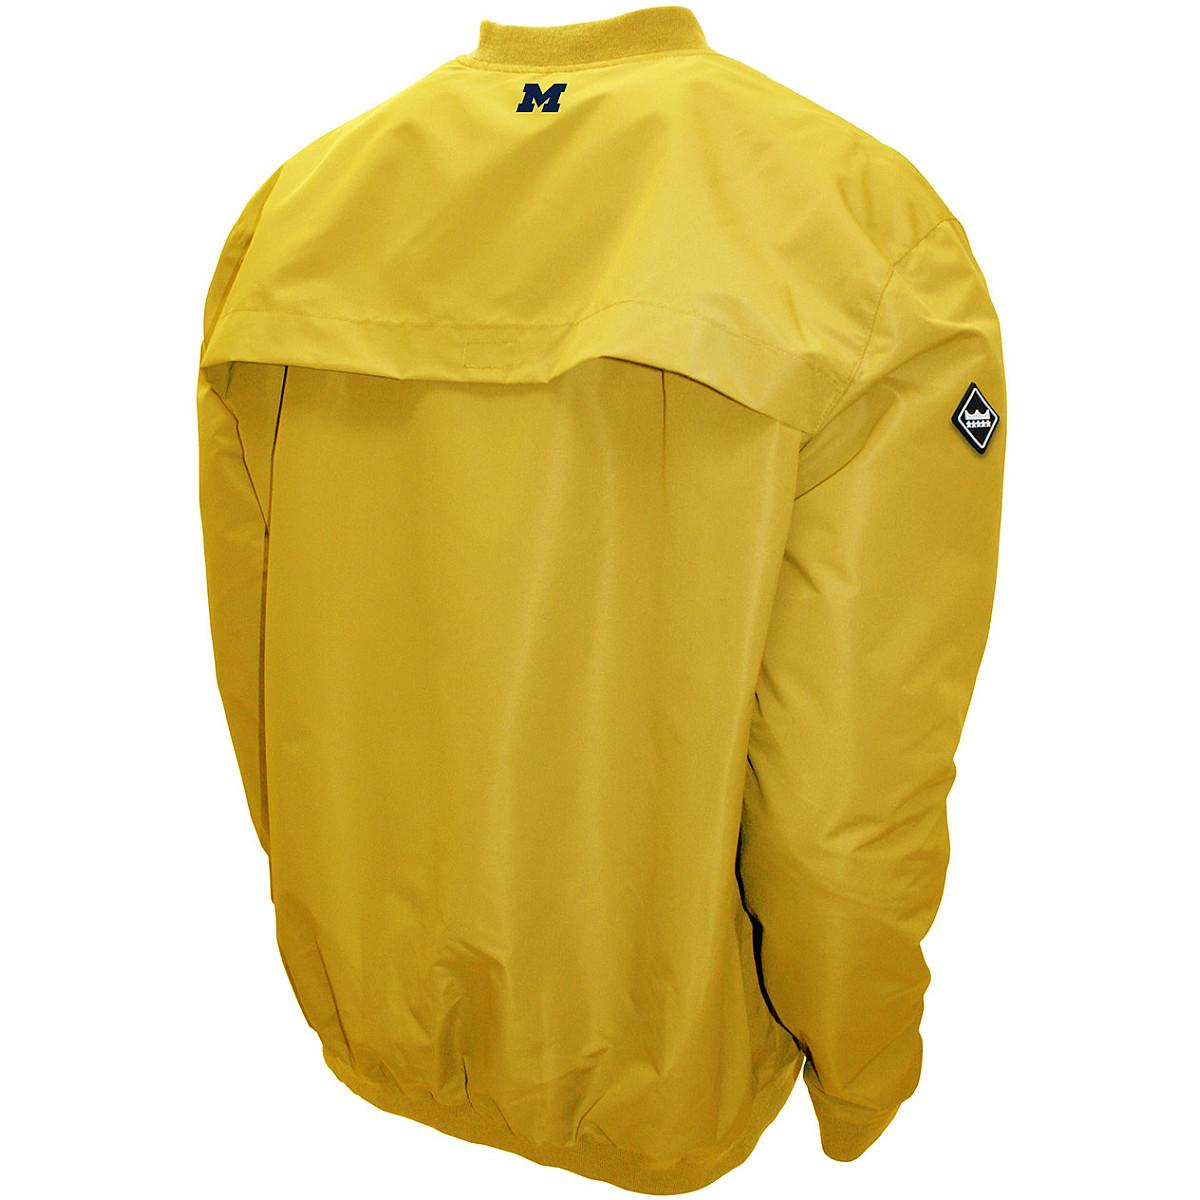 Franchise-Cub-MTC-Michigan-Wolverines-Men-039-s-Members-Windshell-Pullover-Jacket thumbnail 4